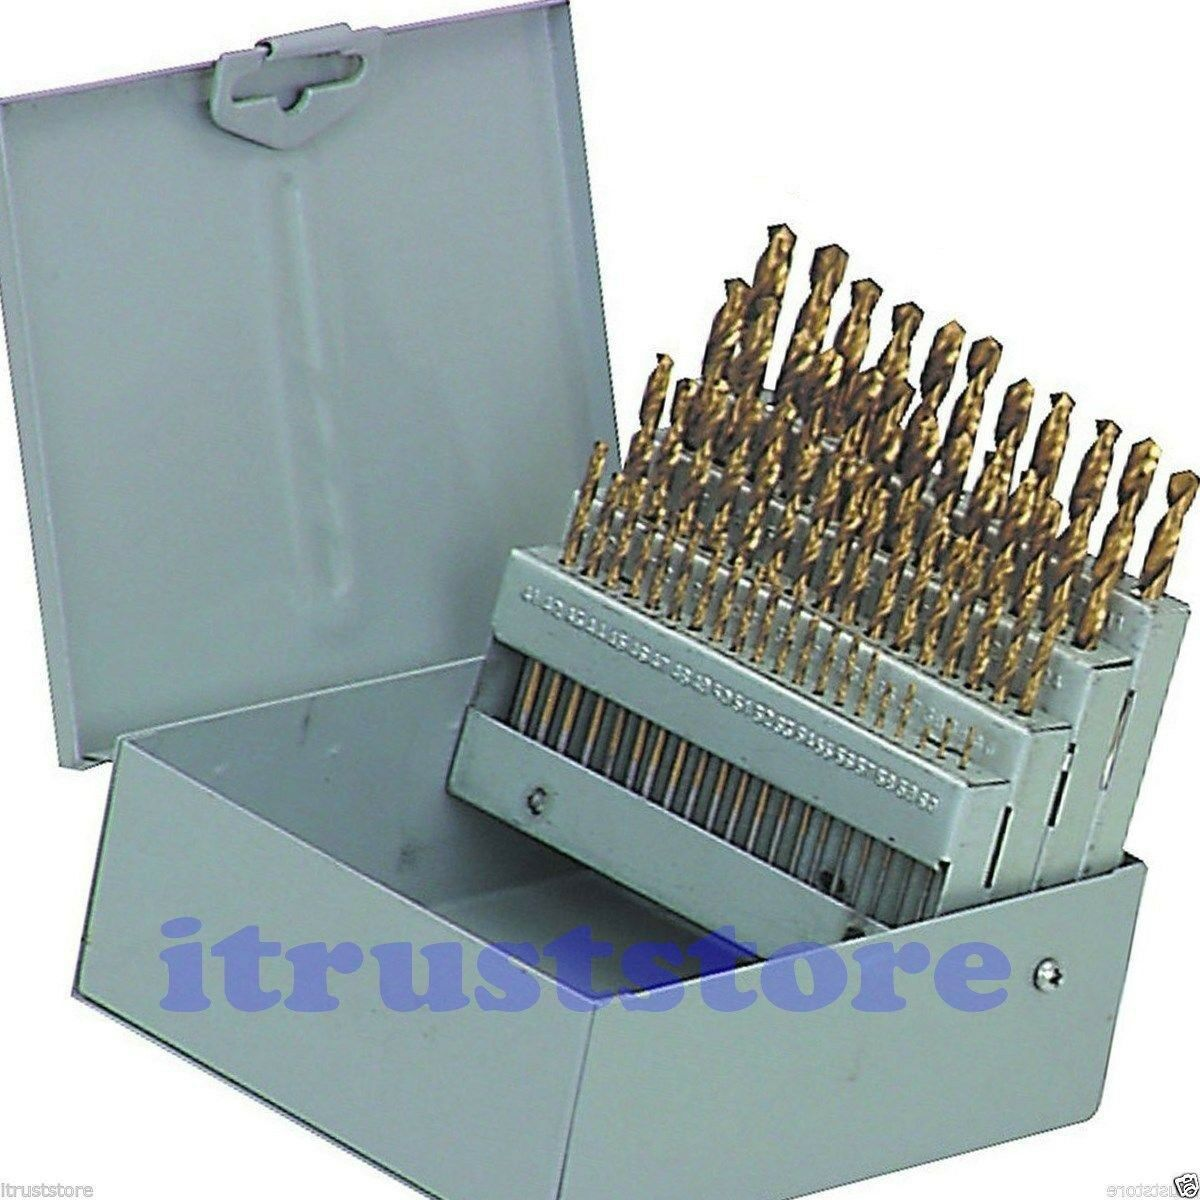 1 thru 60 number wire gauge gage sizes size numbered drill bit tool picture 1 of 3 greentooth Choice Image